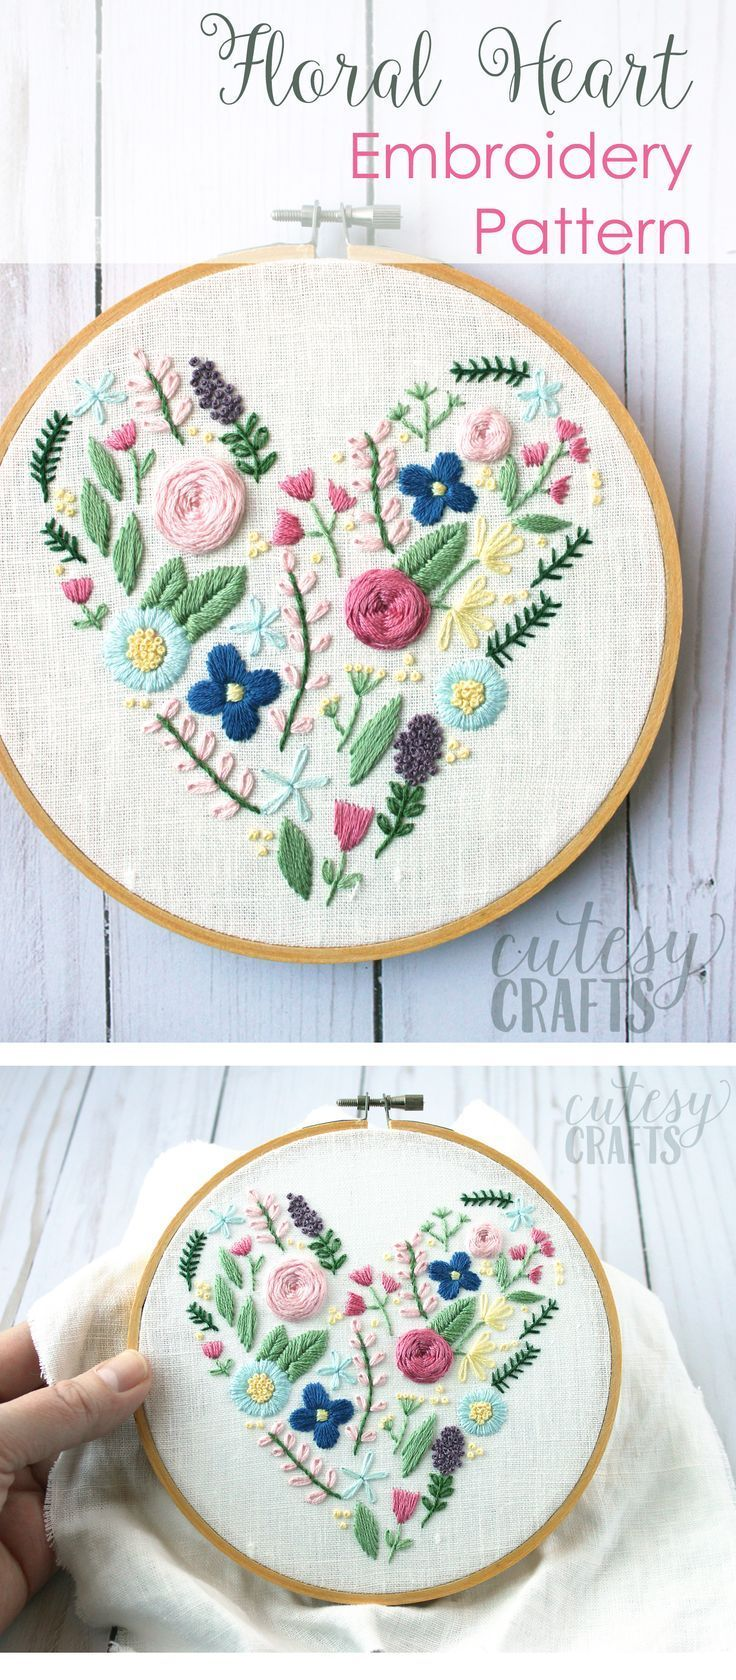 DIY Crafts : Learn hand embroidery stitches with this beautiful free